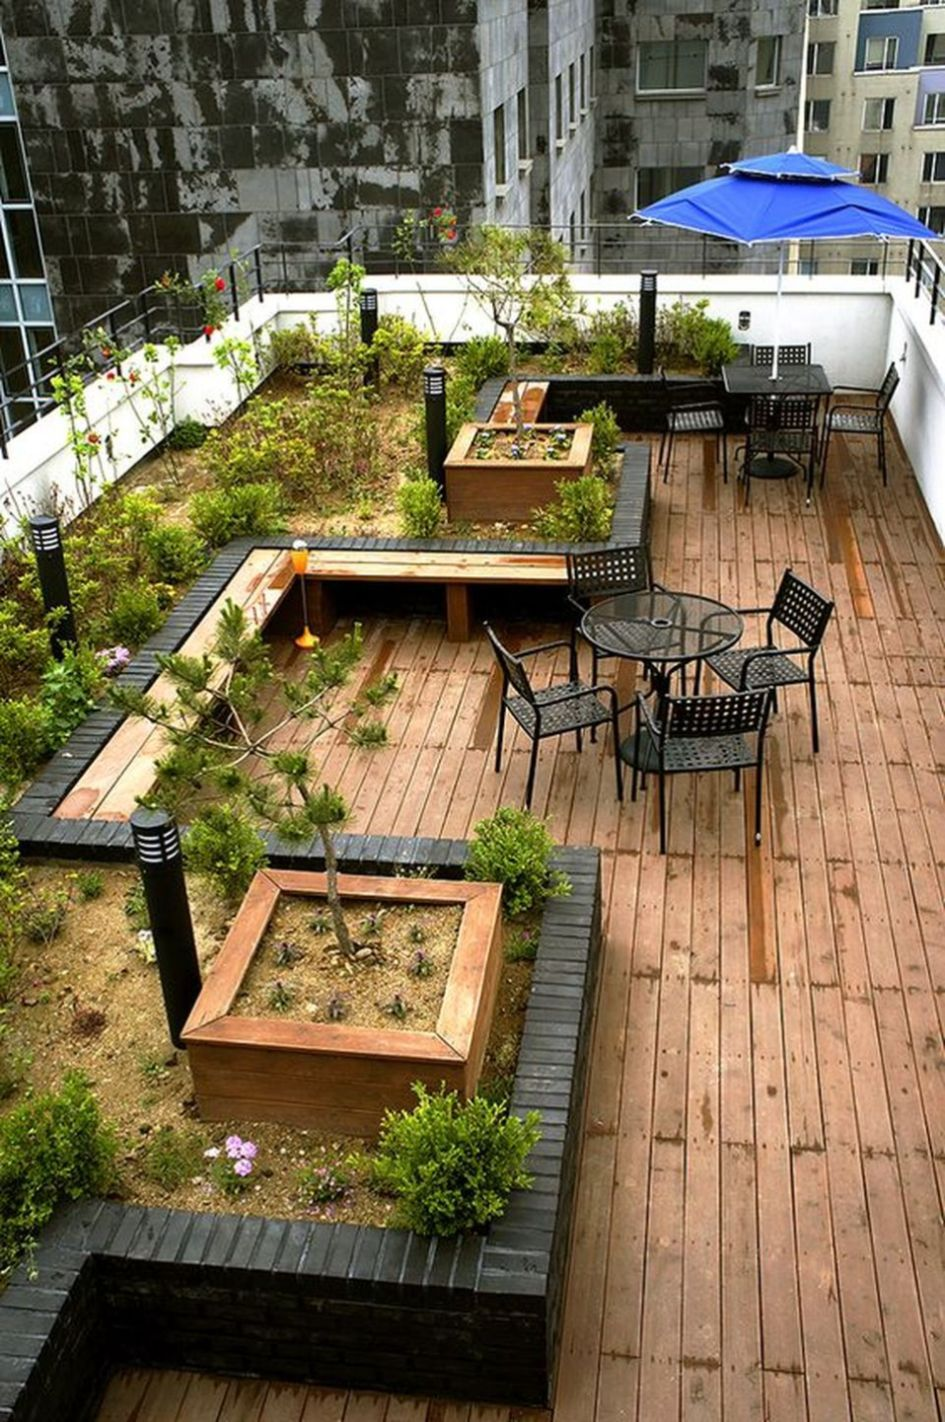 Amazing Rooftop Porch And Balcony Inspirations 20 Rooftop Patio Design Roof Garden Design Rooftop Terrace Design